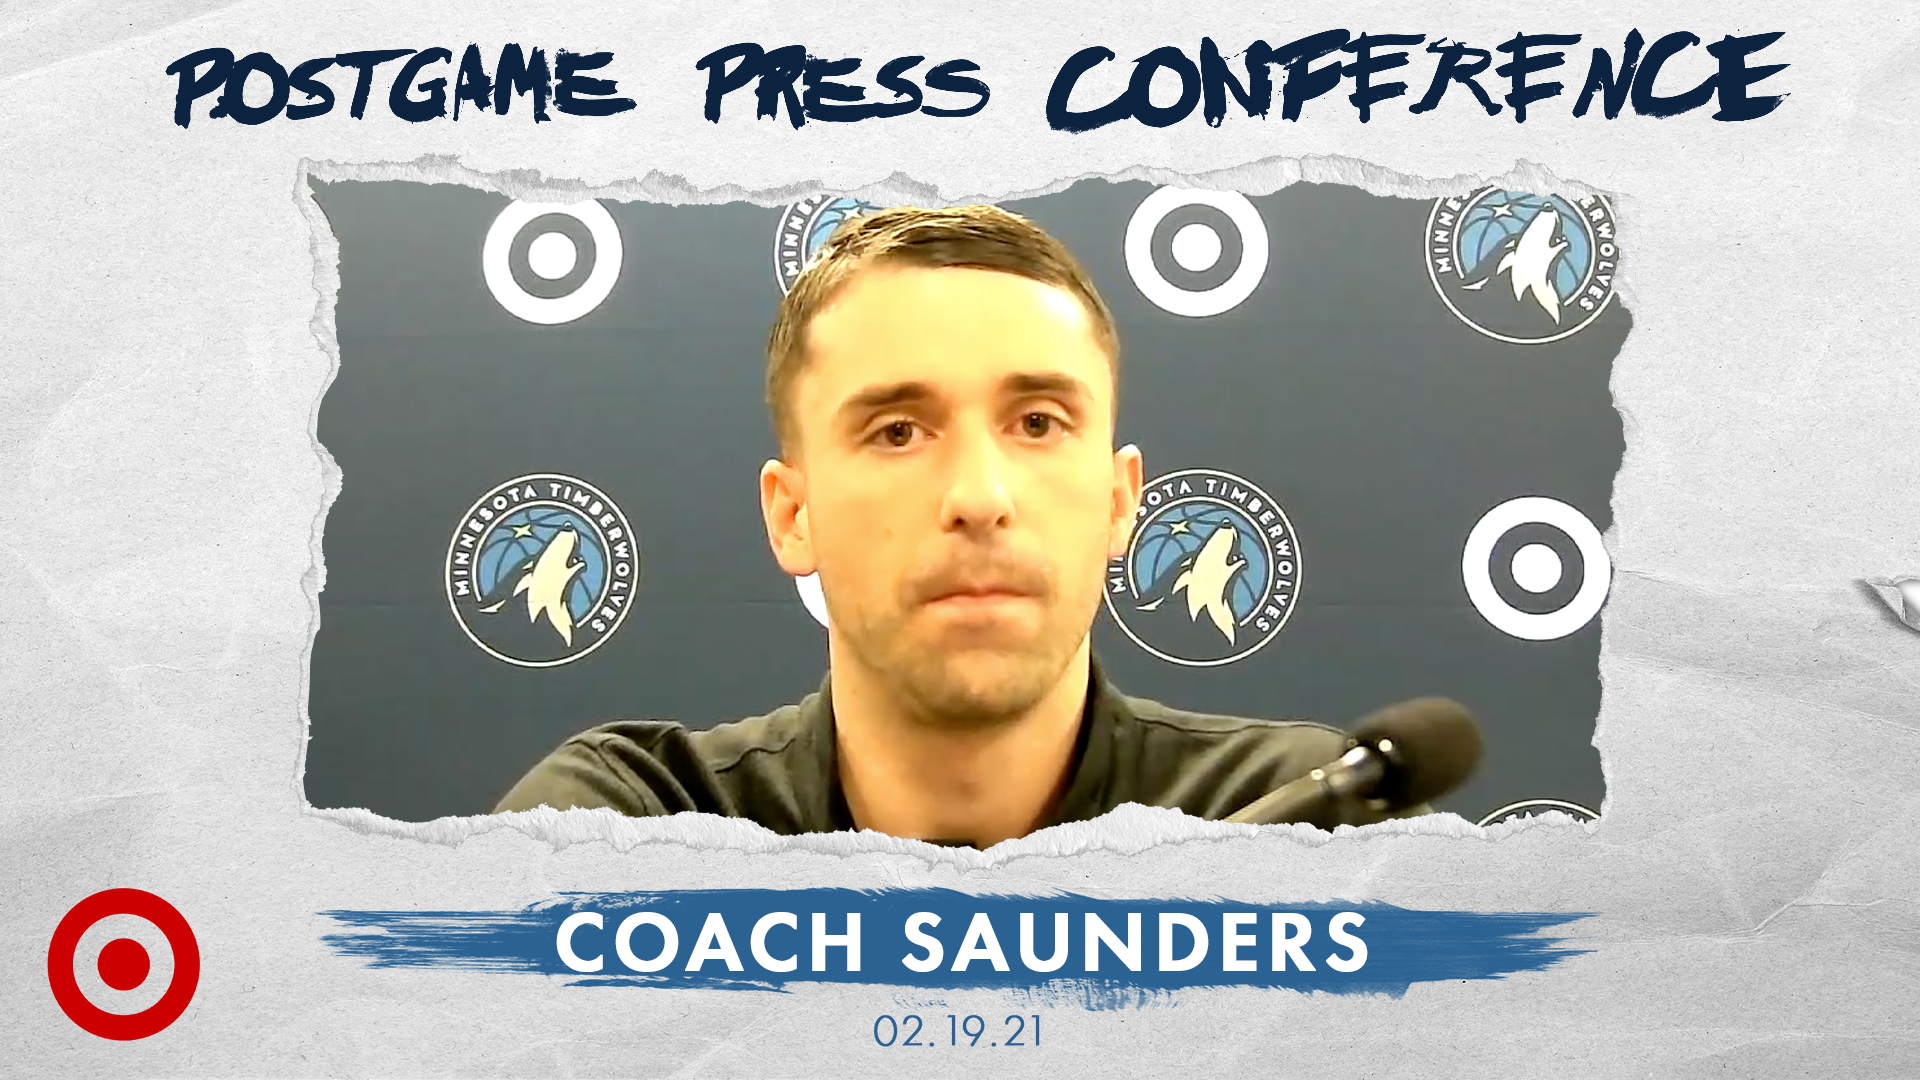 Coach Saunders Postgame Press Conference - February 19, 2021